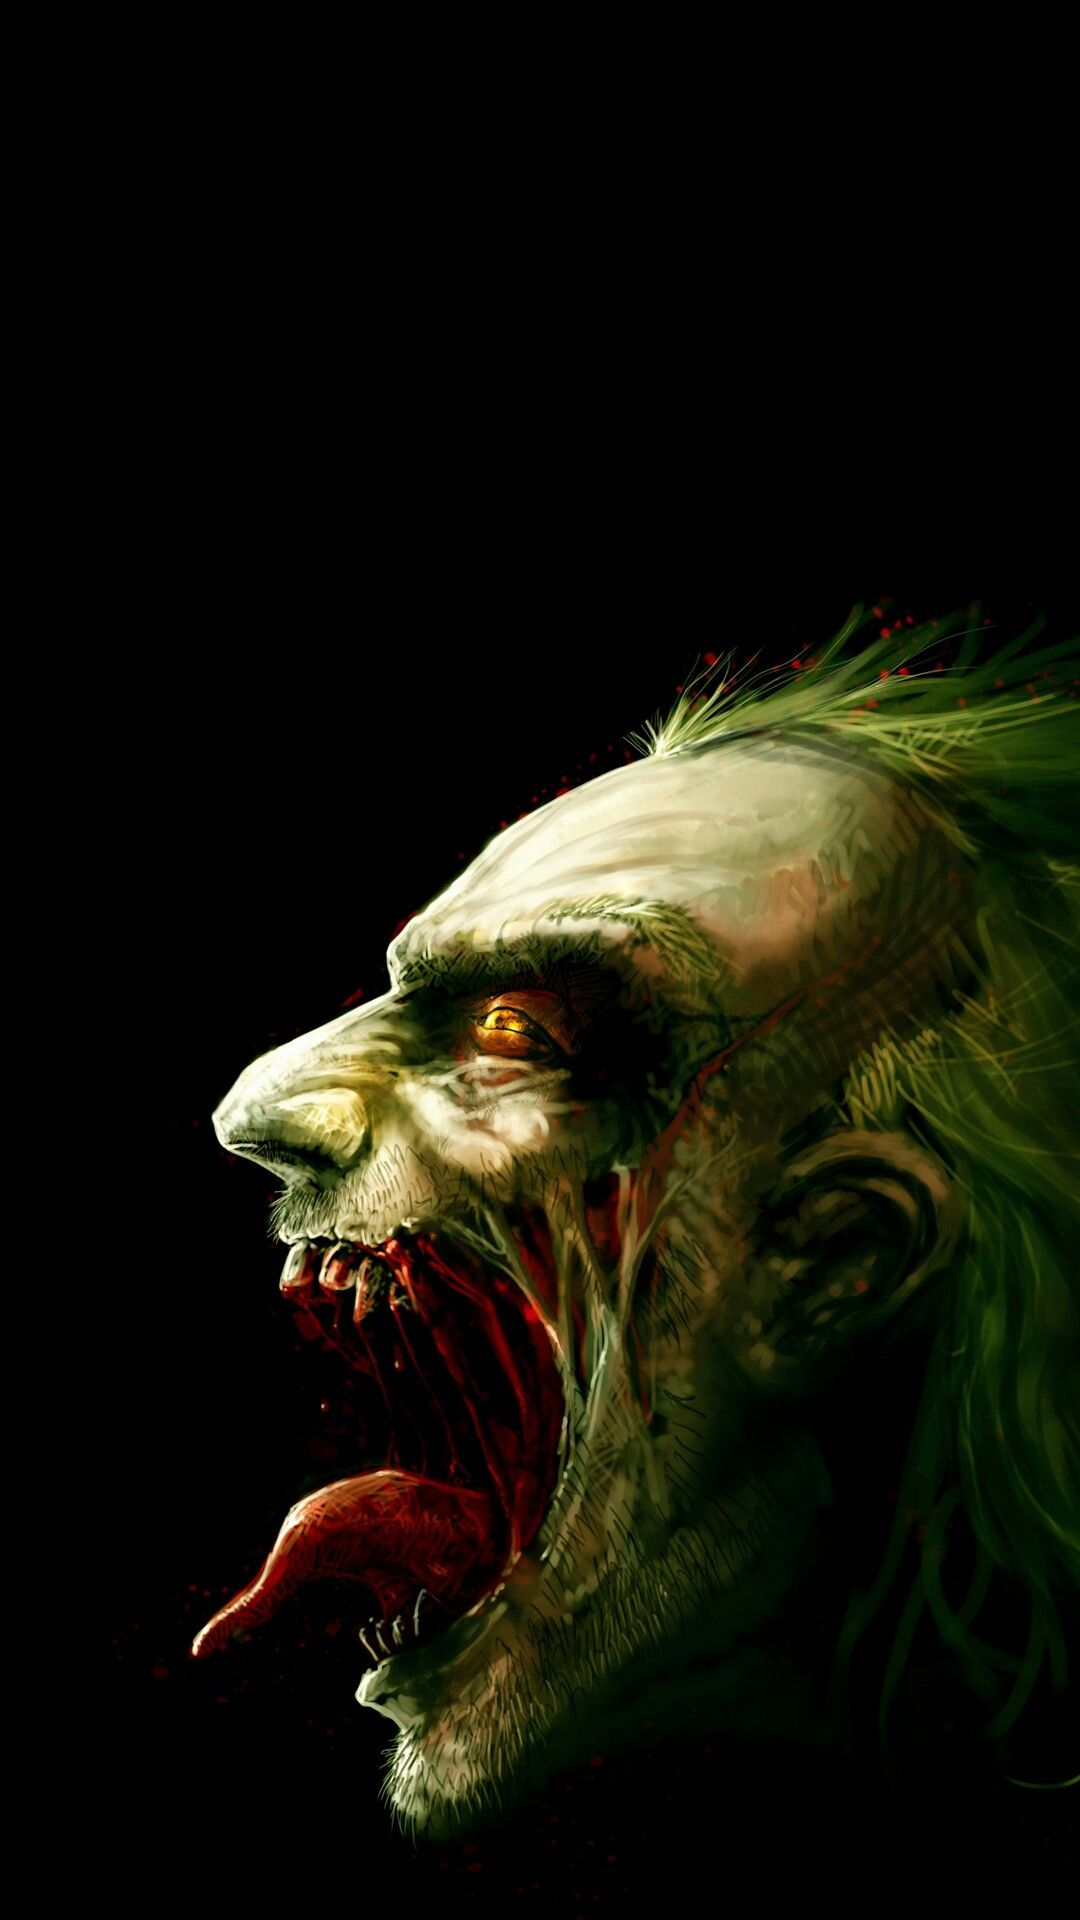 Pin by Eric Weikle on dark souls Joker wallpapers